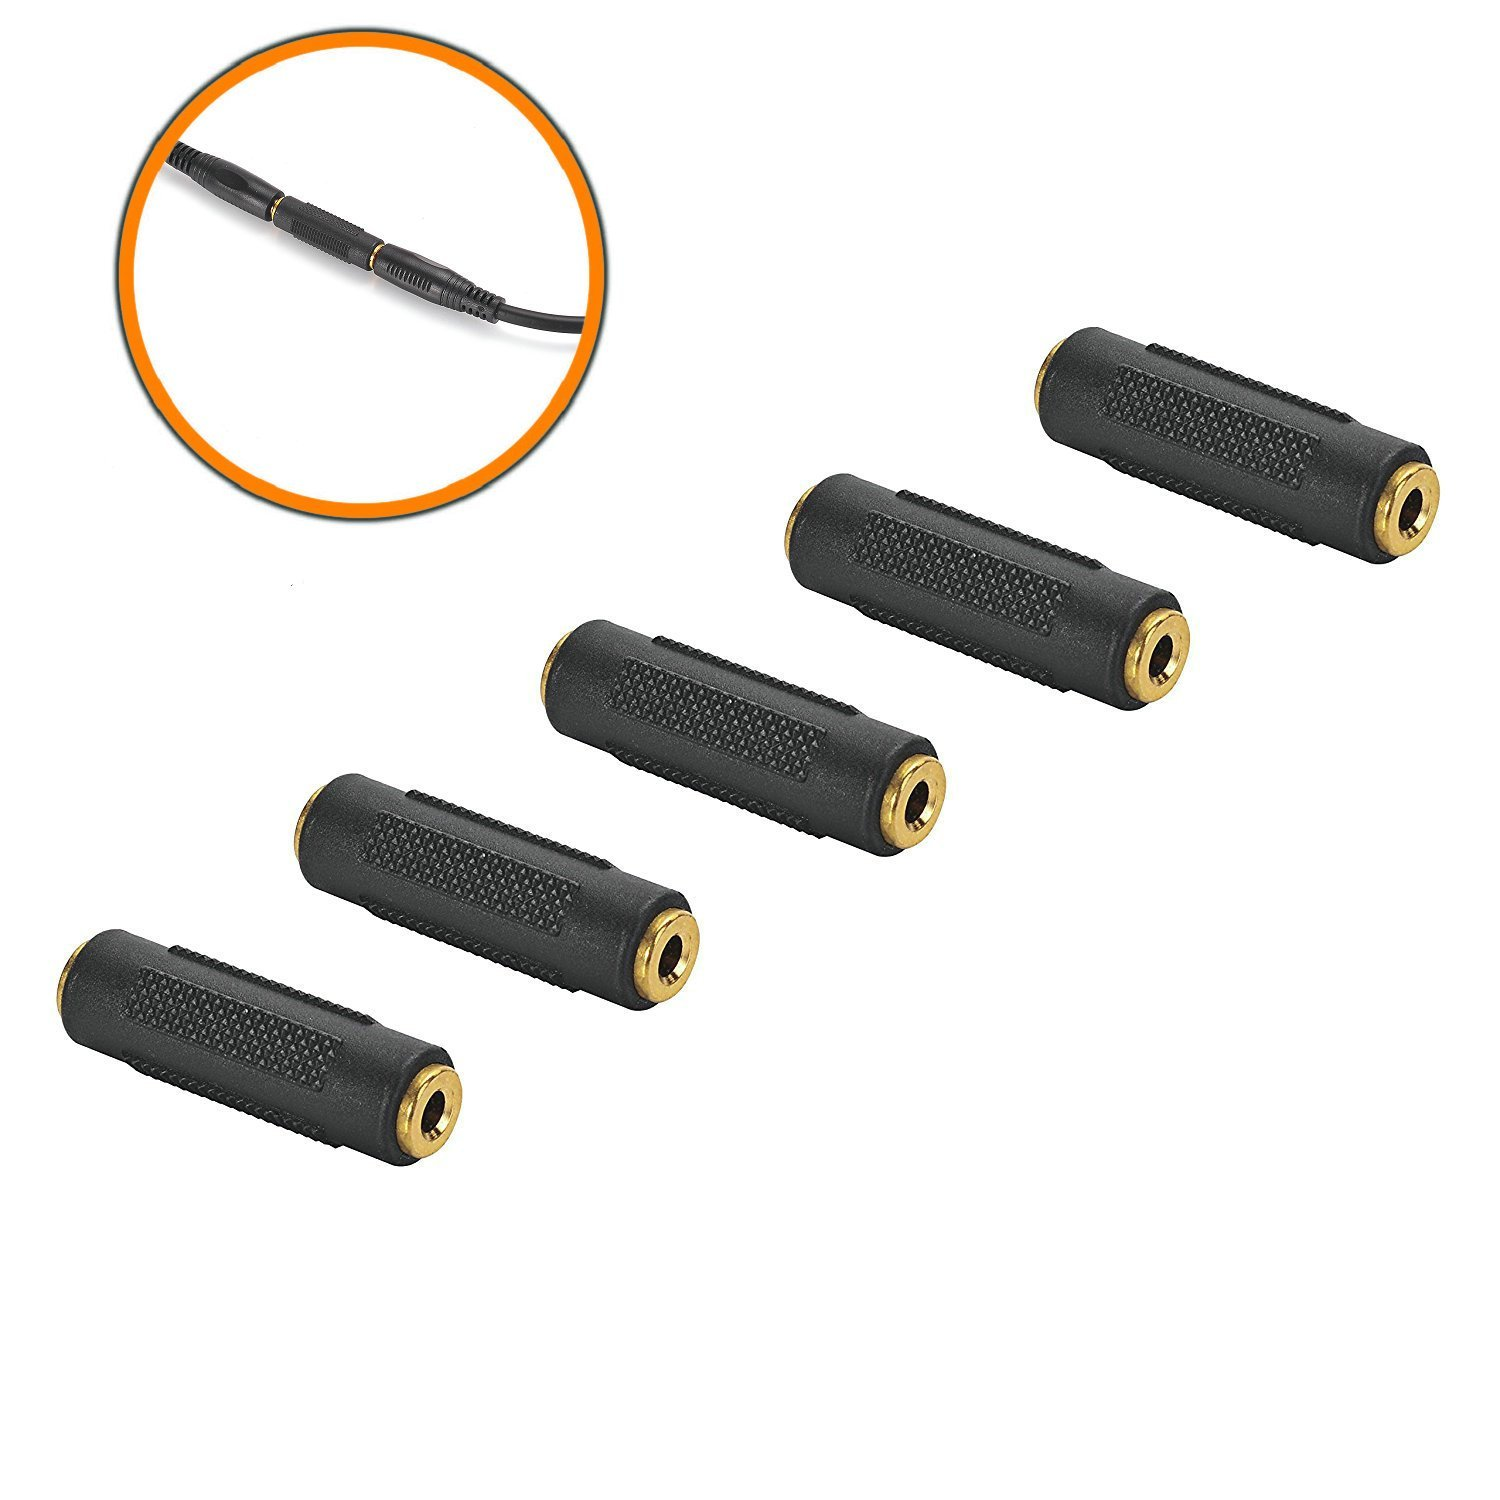 3.5mm F/F Stereo Coupler - 5 Pack Gold Plated 3.5mm Stereo jack Female to Female Adapter Connectors